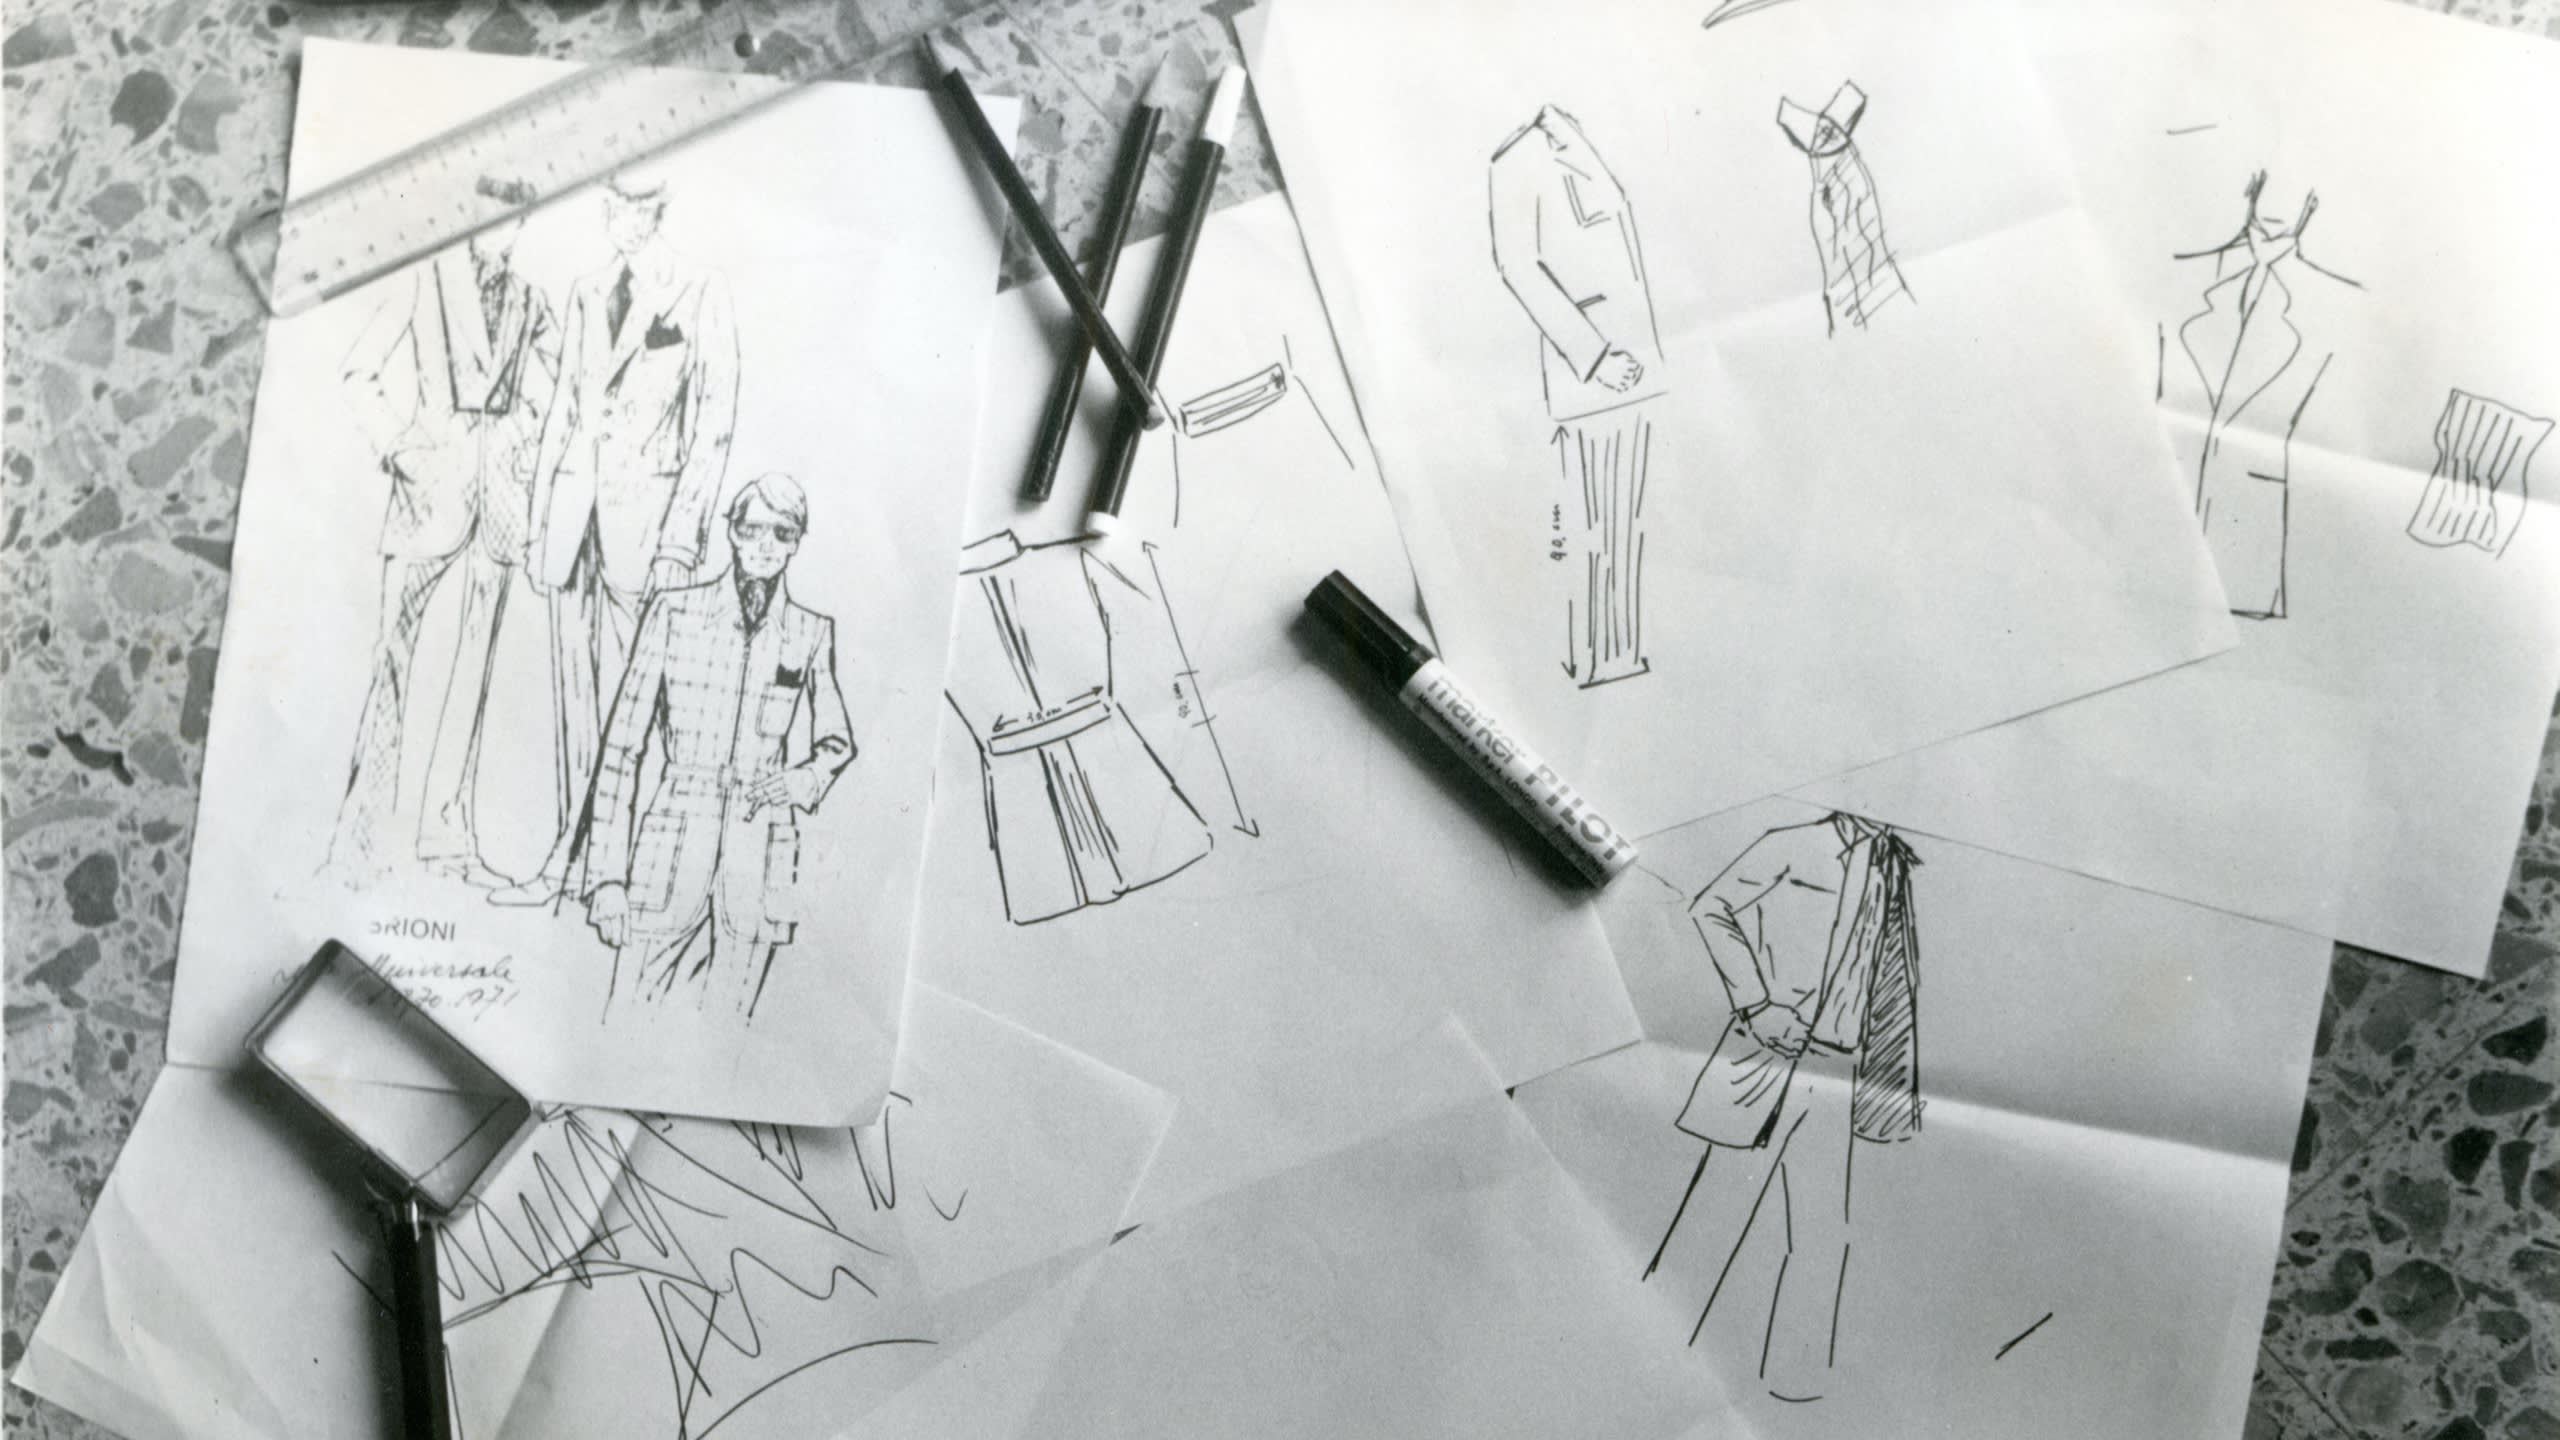 Brioni sketches from the 1970s